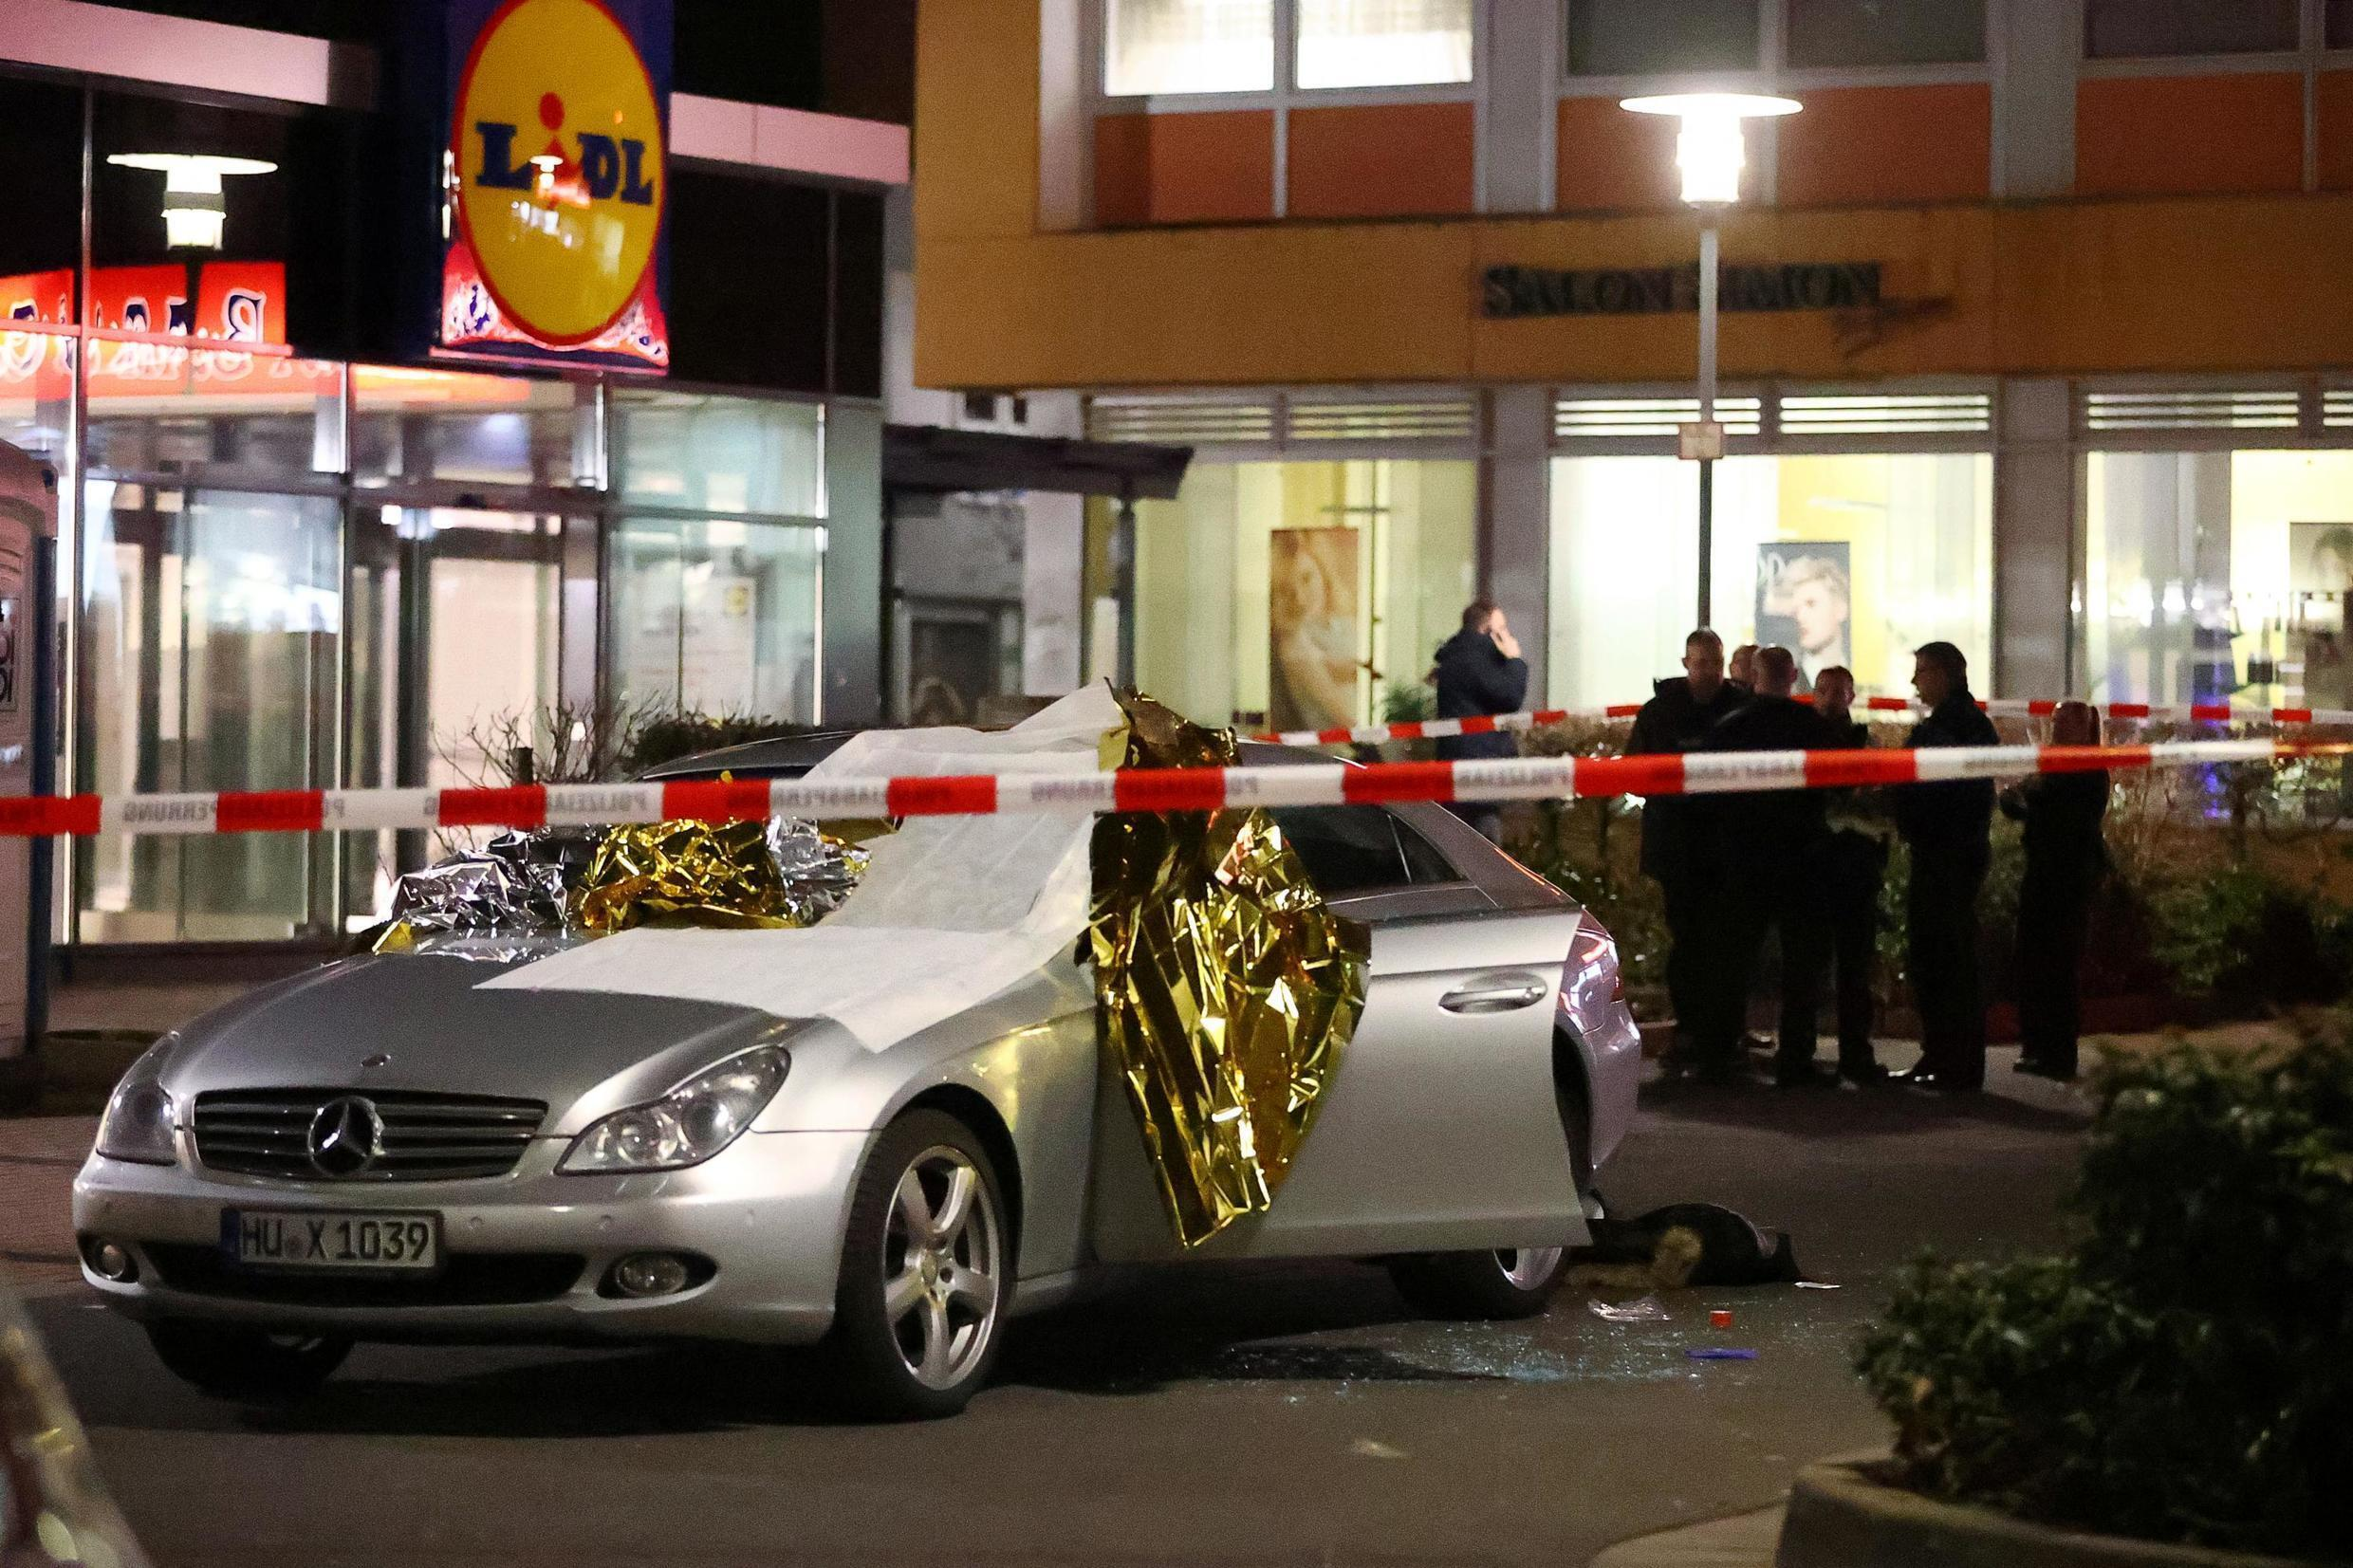 A vehicle damaged in one of the shooting incidents in the German city of Hanau, 19 February 2020.